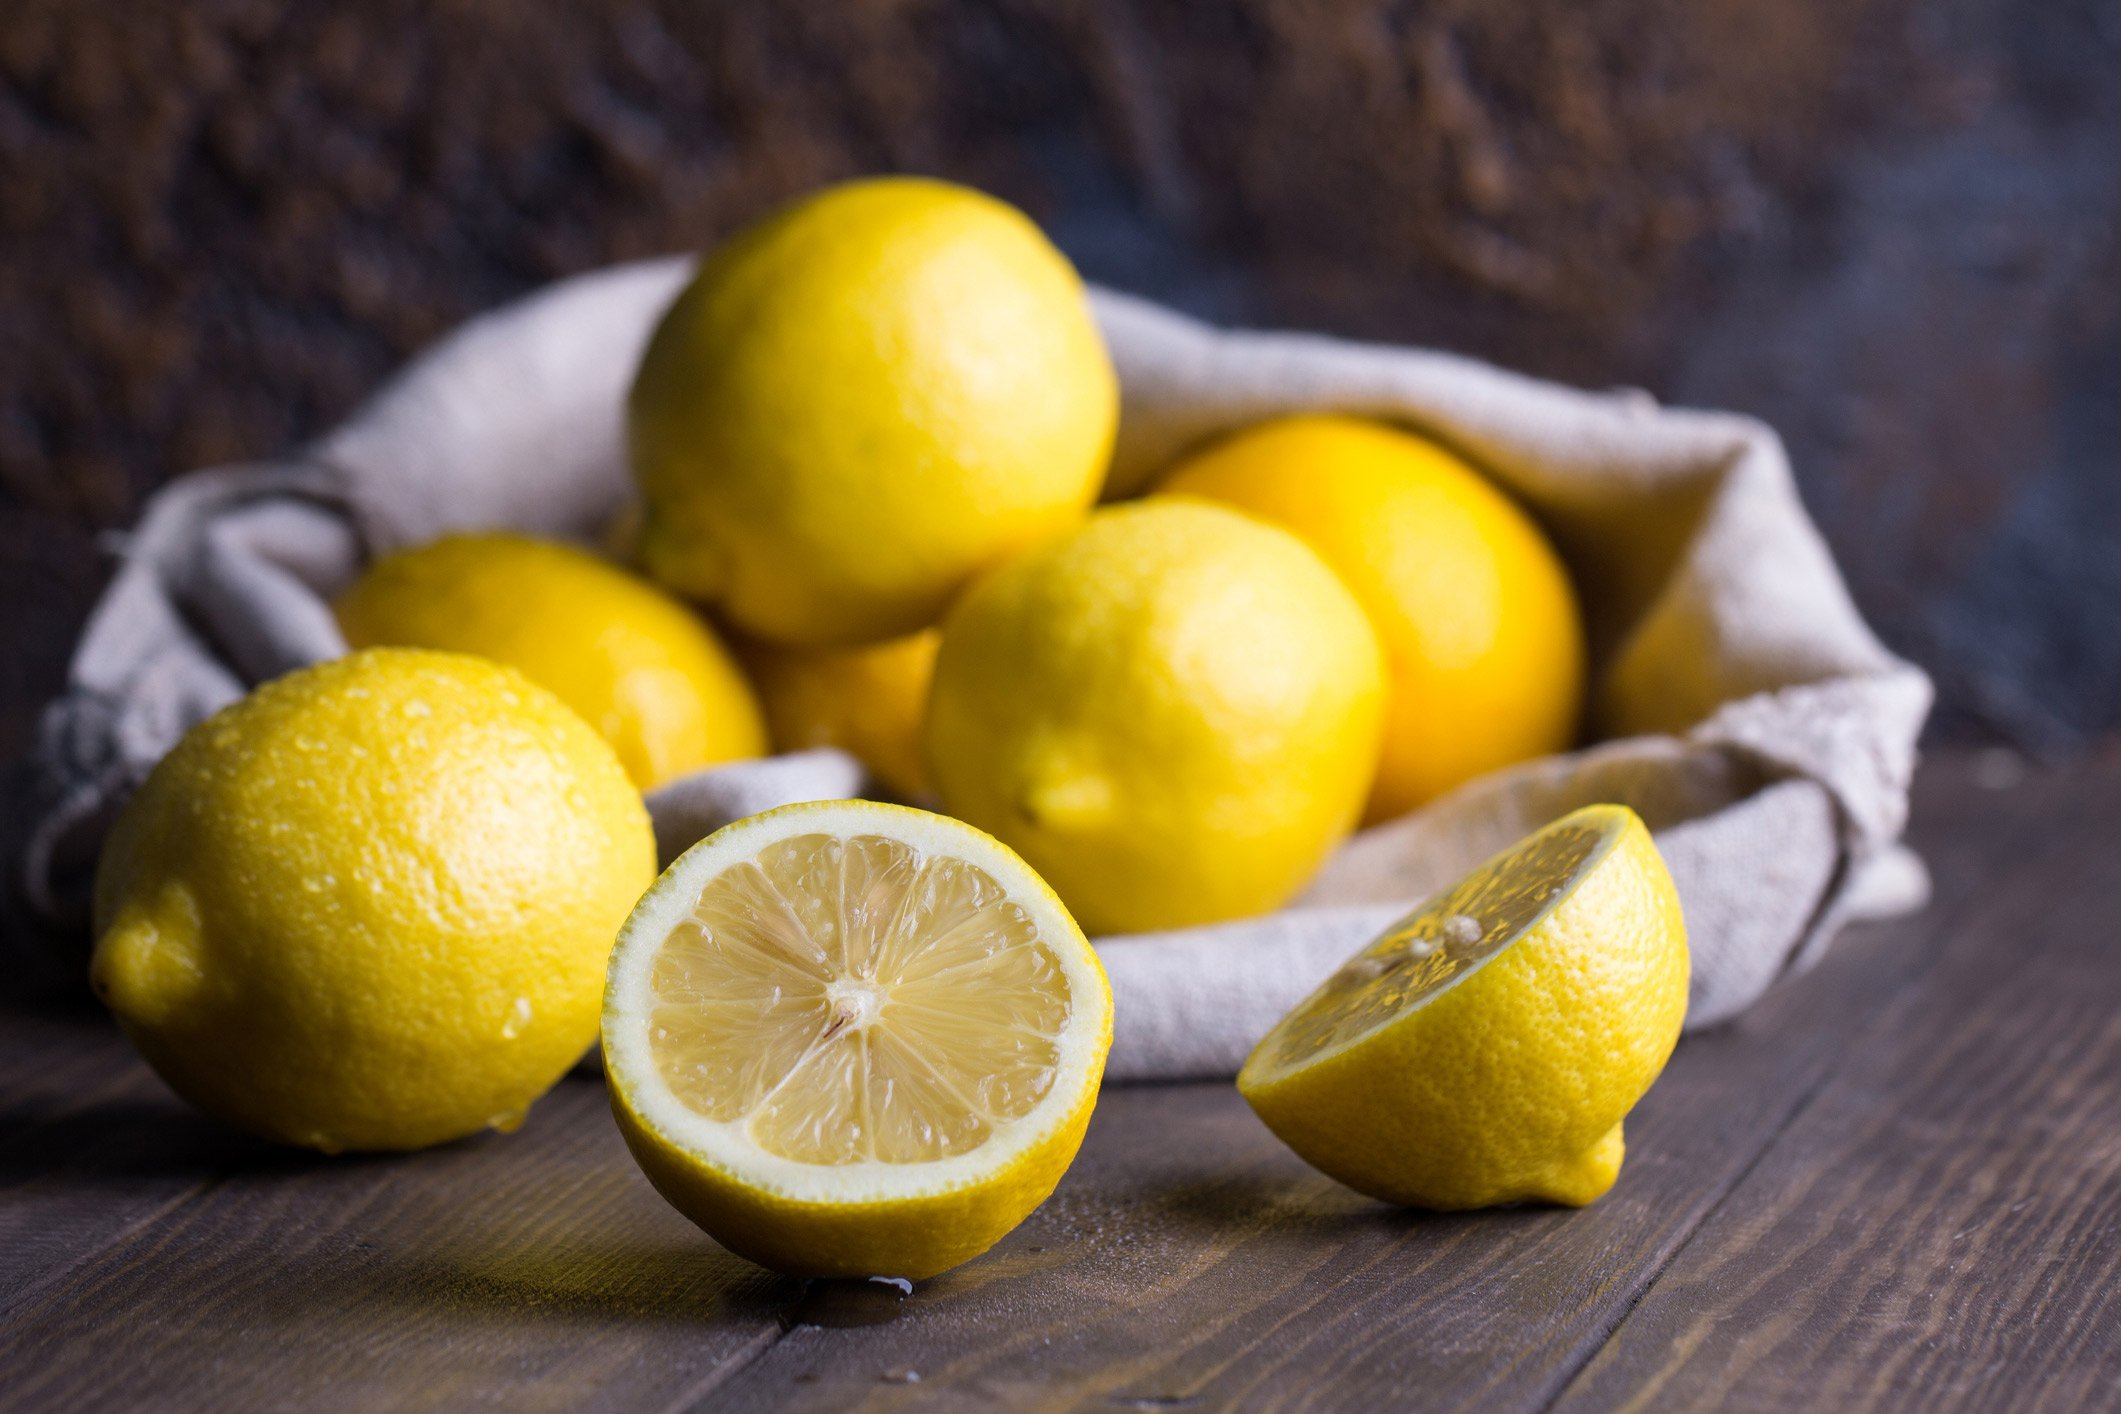 Top detoxifying foods: Lemons